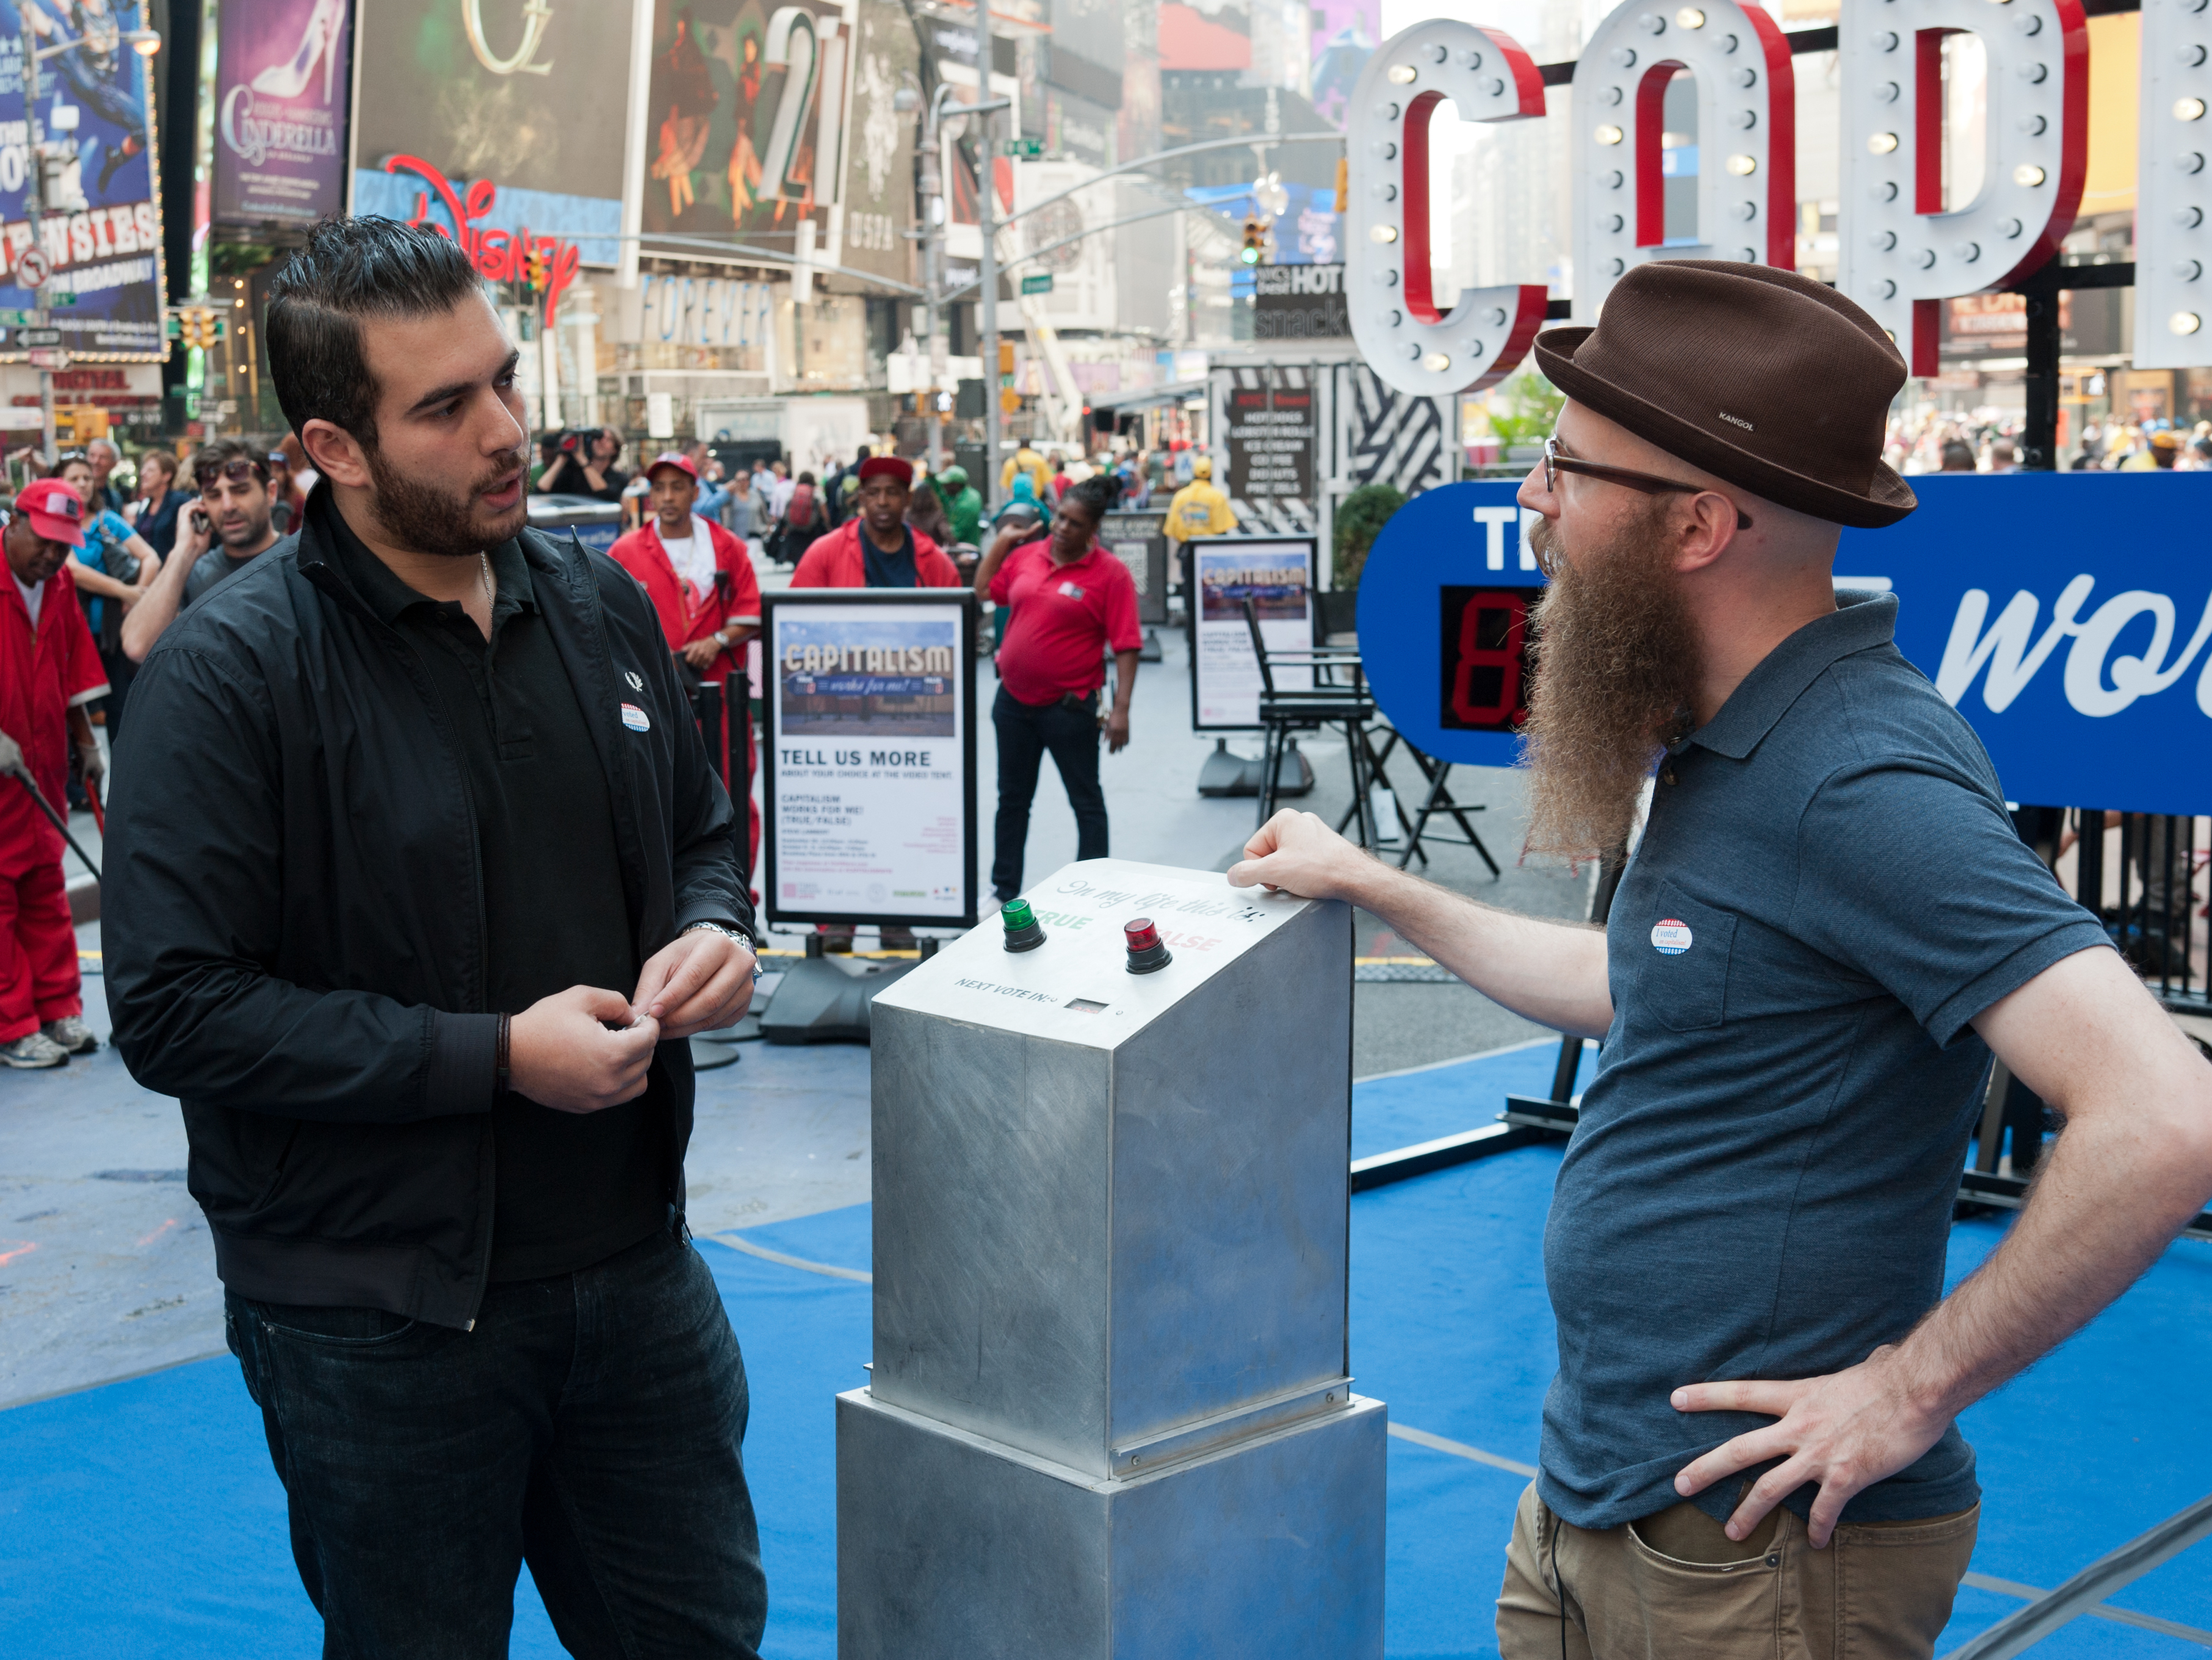 Artist Steve Lambert, right, asks people to vote on whether capitalism is working -- for them. The art installation is in Times Square through Oct. 9.